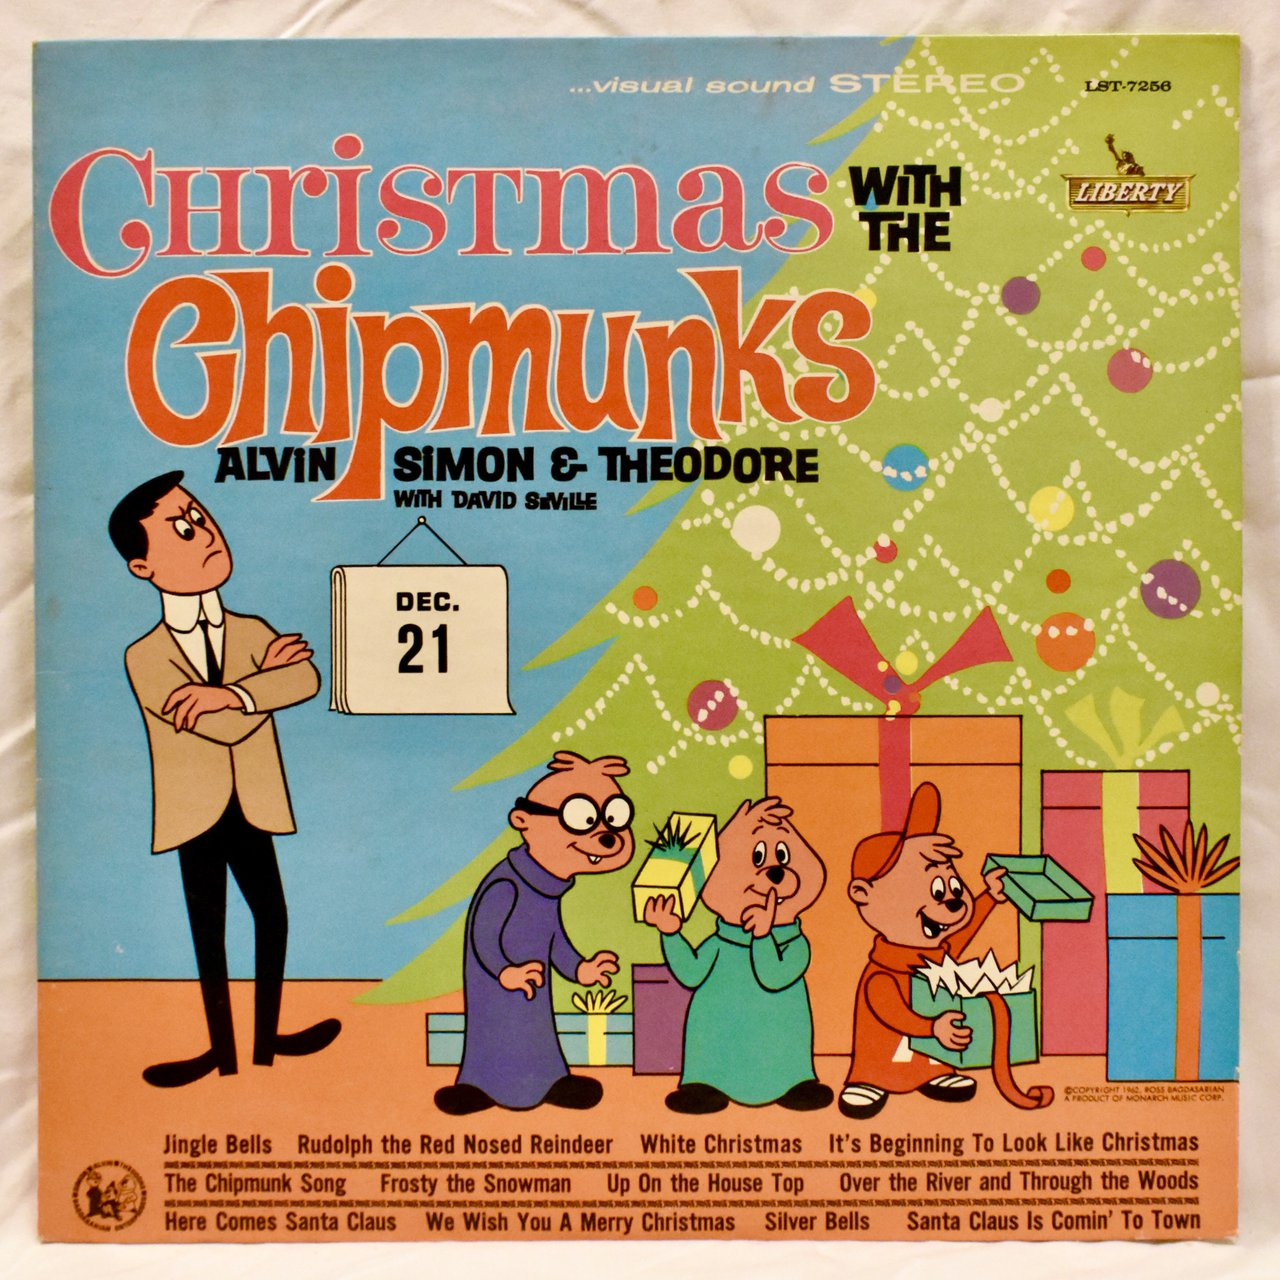 Christmas With The Chipmunks Label: Sunset Records – LP, - Depop